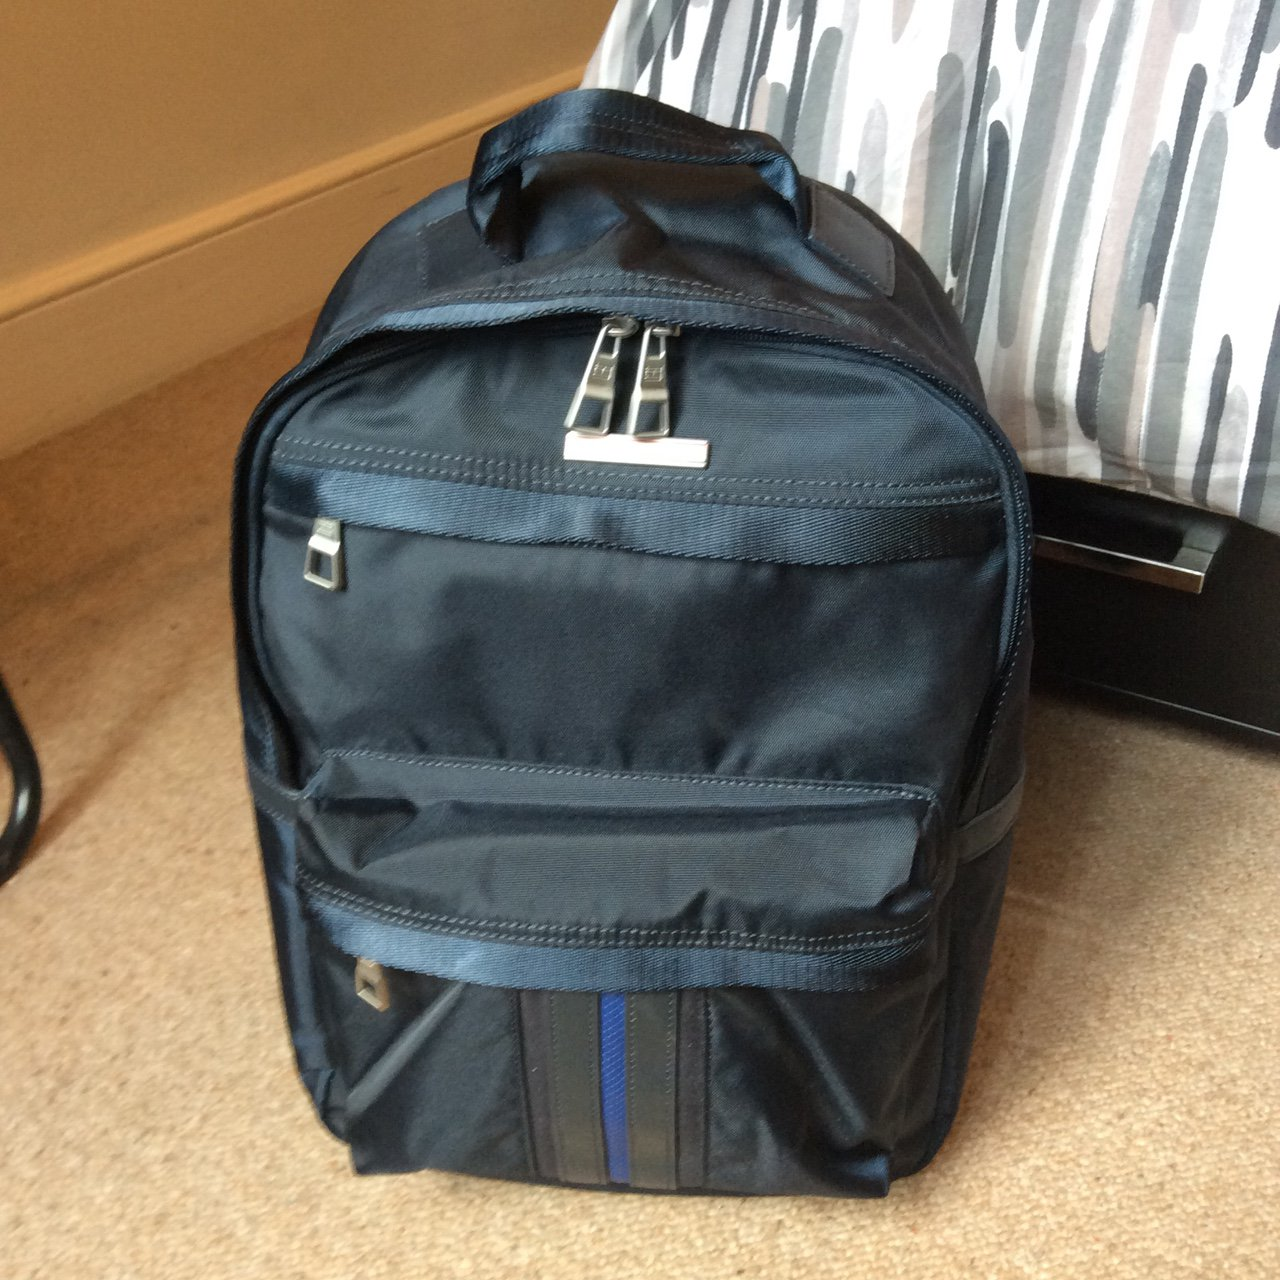 0dabbb7afad2 Tommy Hilfiger Jeremy men s backpack in blue. Used once - Depop